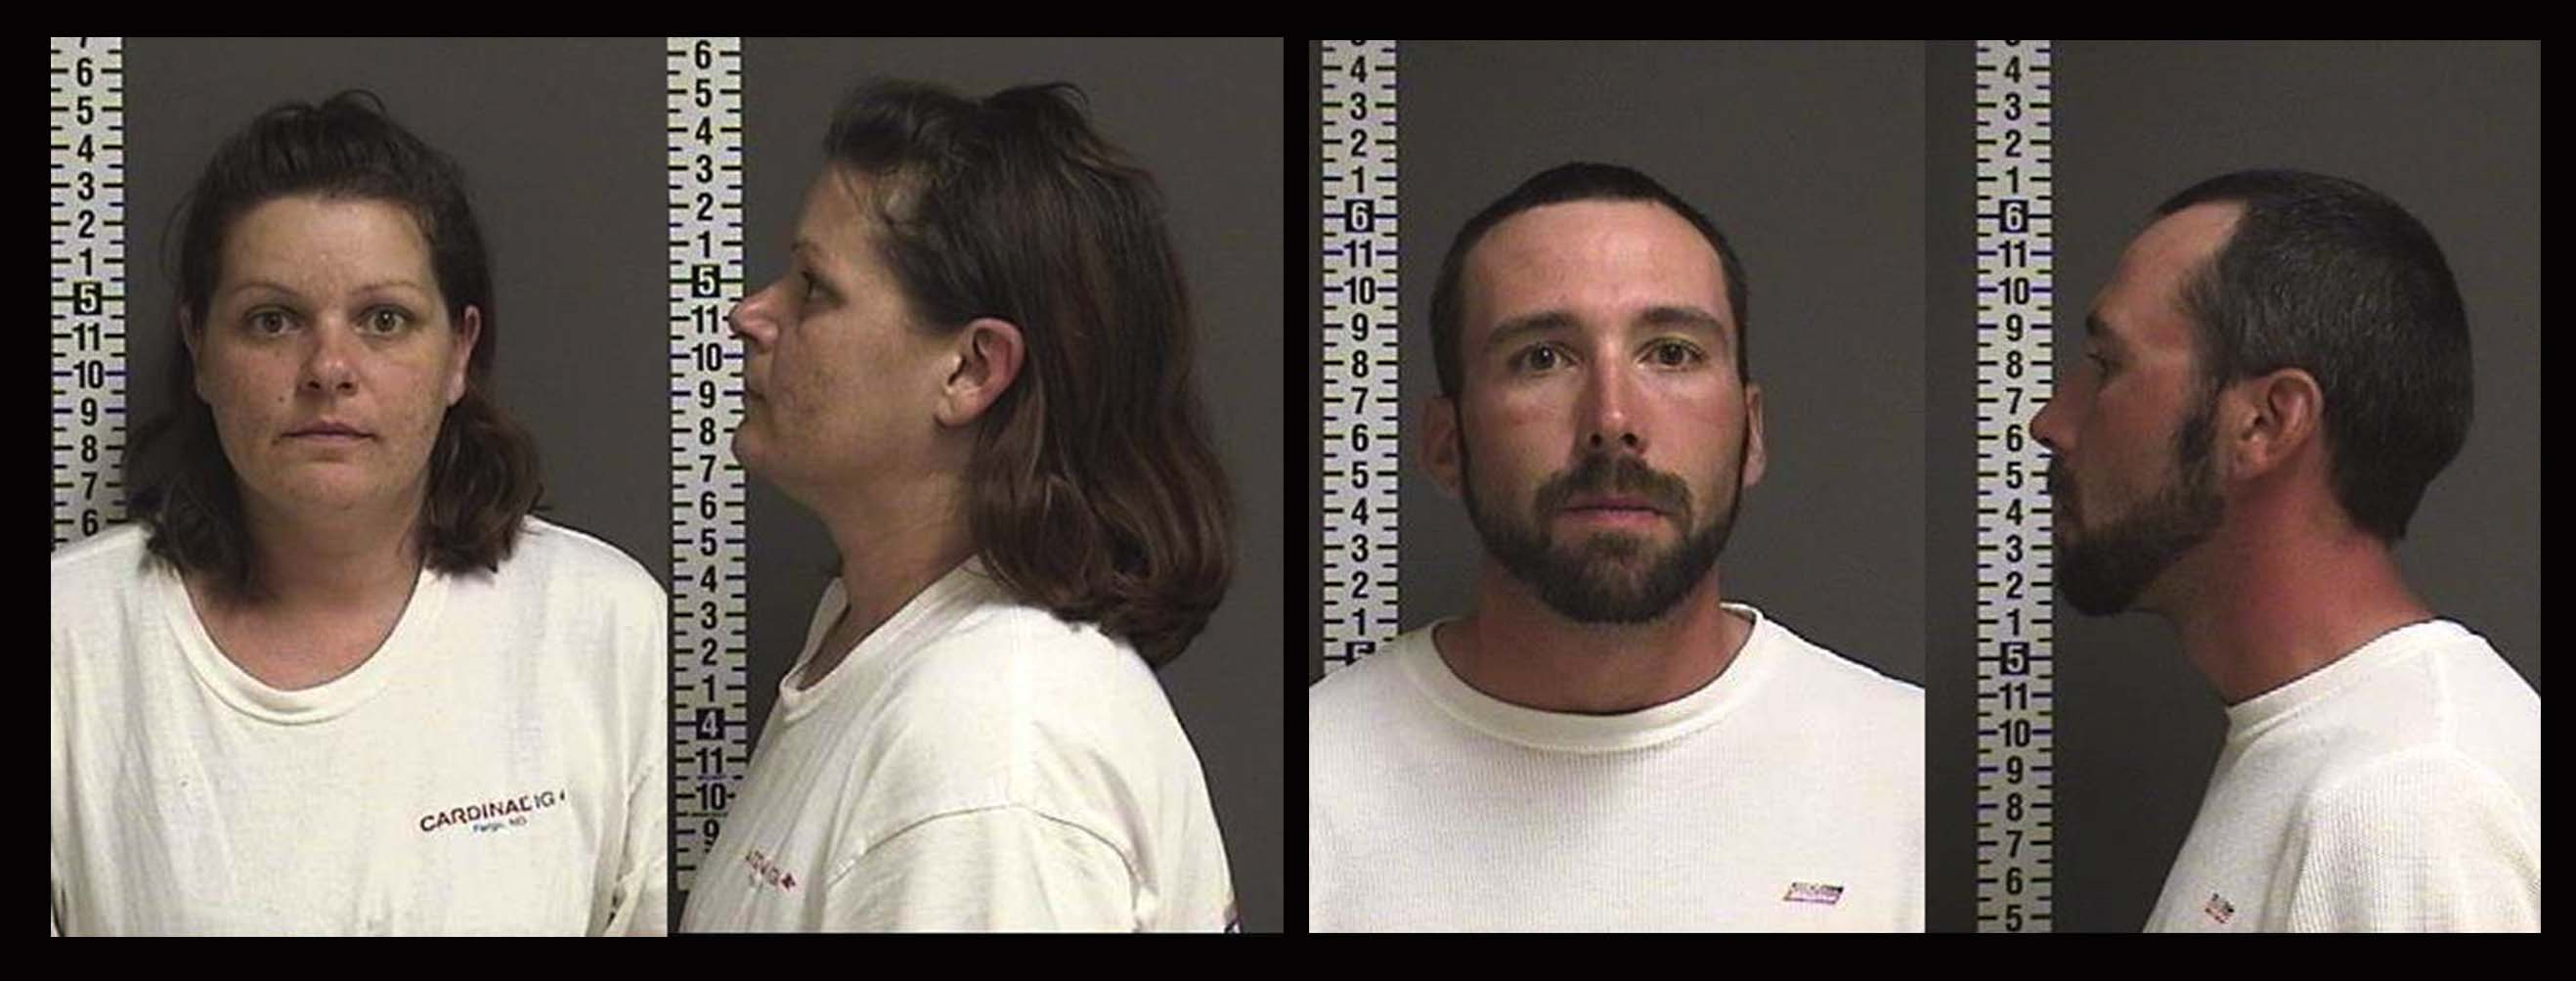 Brooke Lynn Crews and William Henry Hoehn - photo provided by the Fargo Police Department